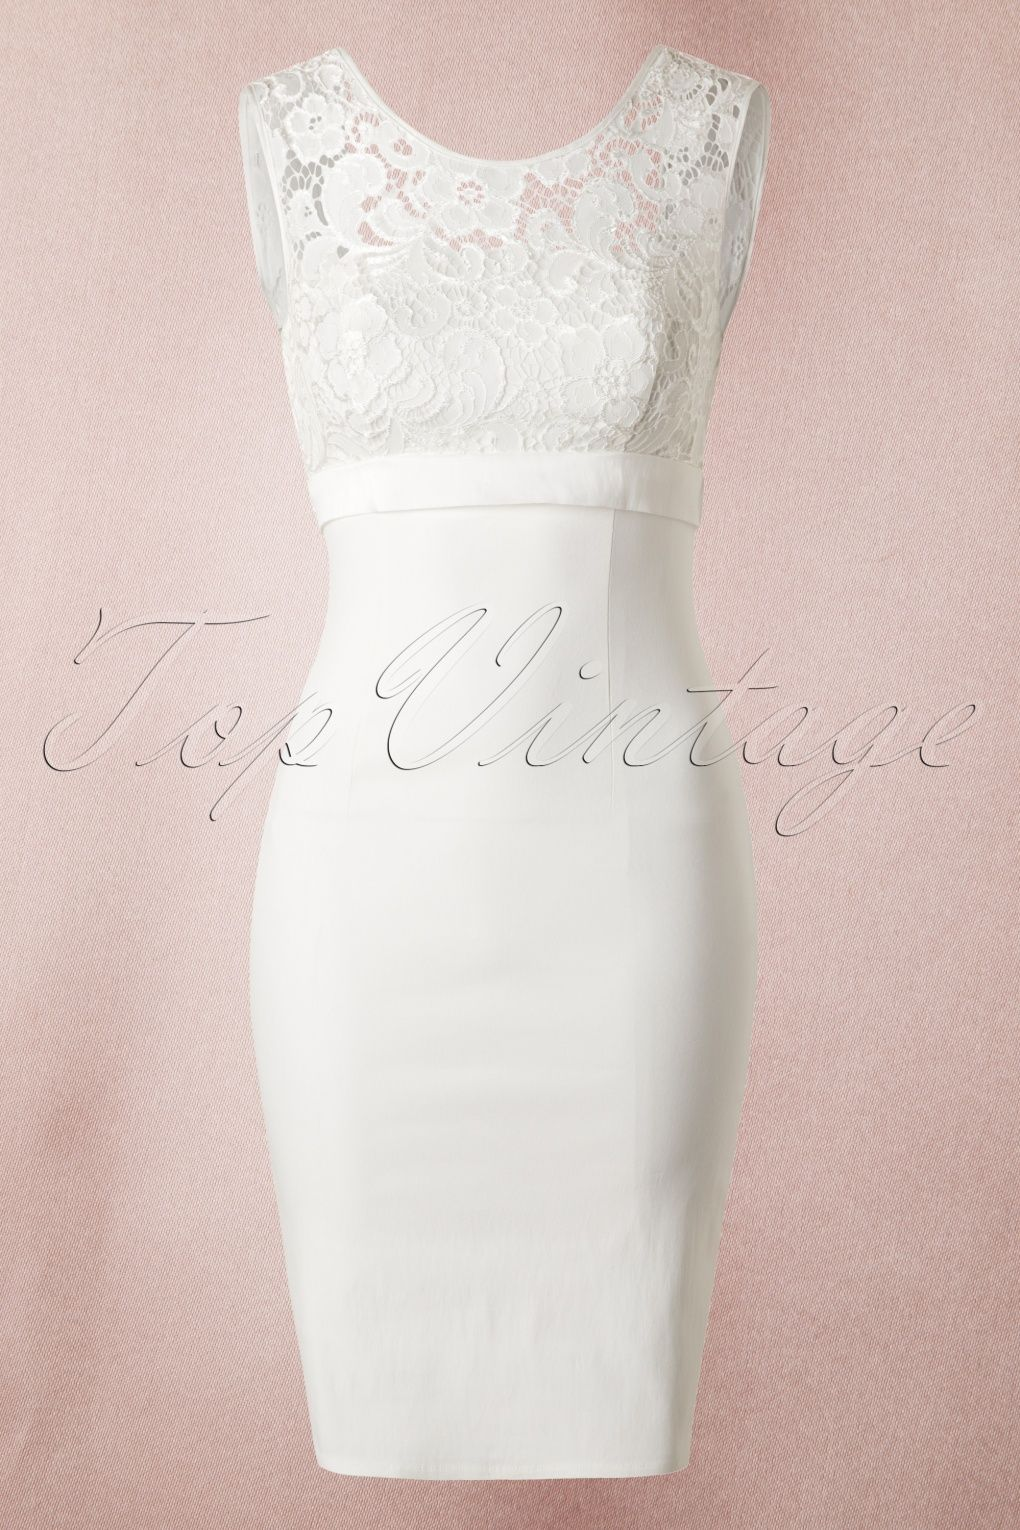 50s White Lace Bow Pencil Dress | Das kleid, Wundervoll und Beauty